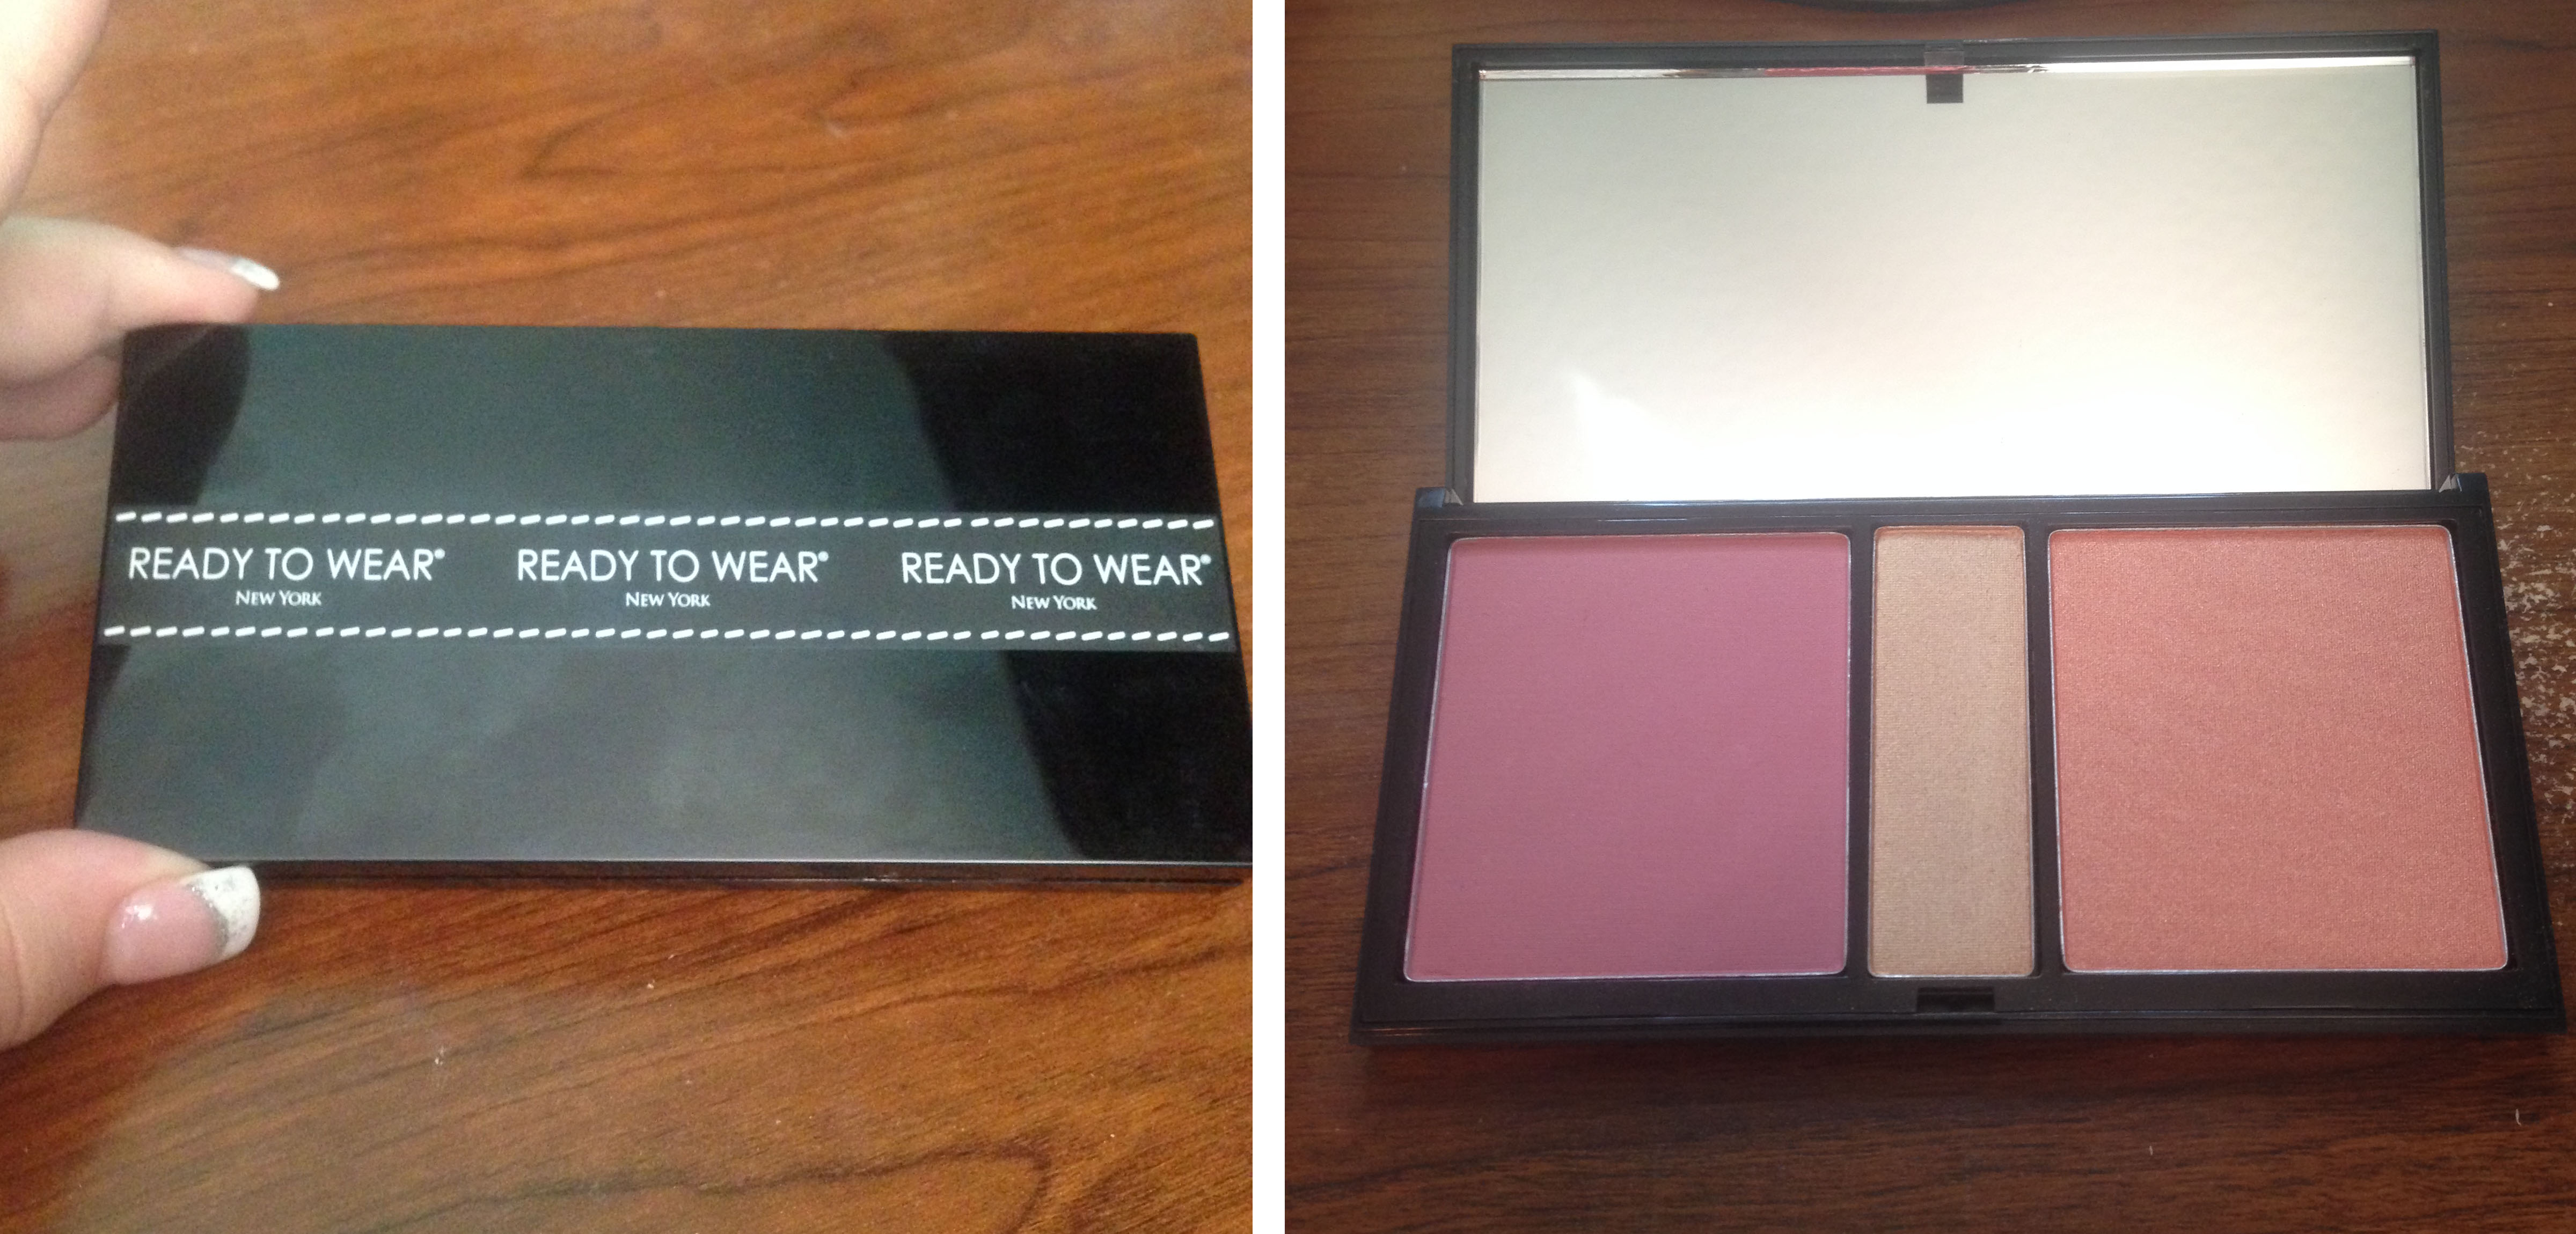 Wear face collection - Ready To Wear New York Glam Collection Face Palette